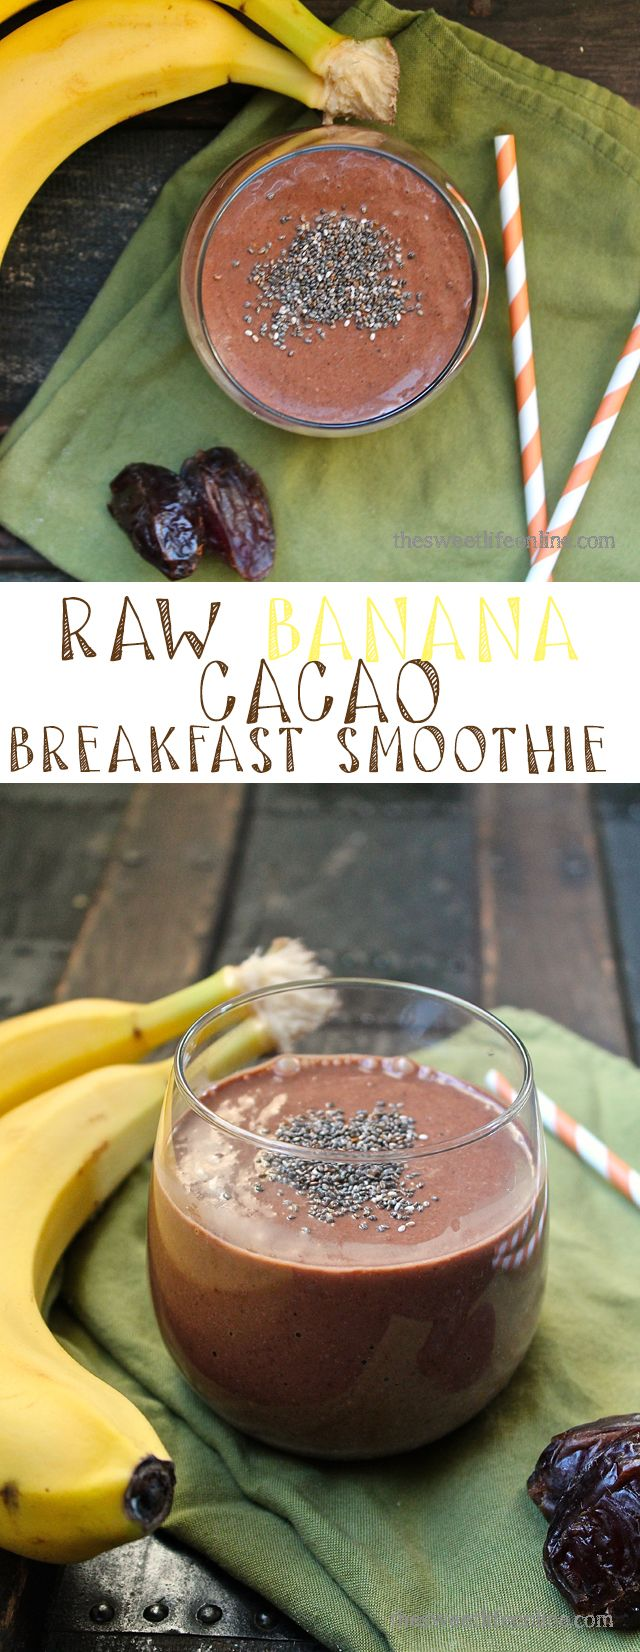 Start your day off right with this raw banana cacao breakfast smoothie - packed with flavor and protein. Click the photo to the full recipe.